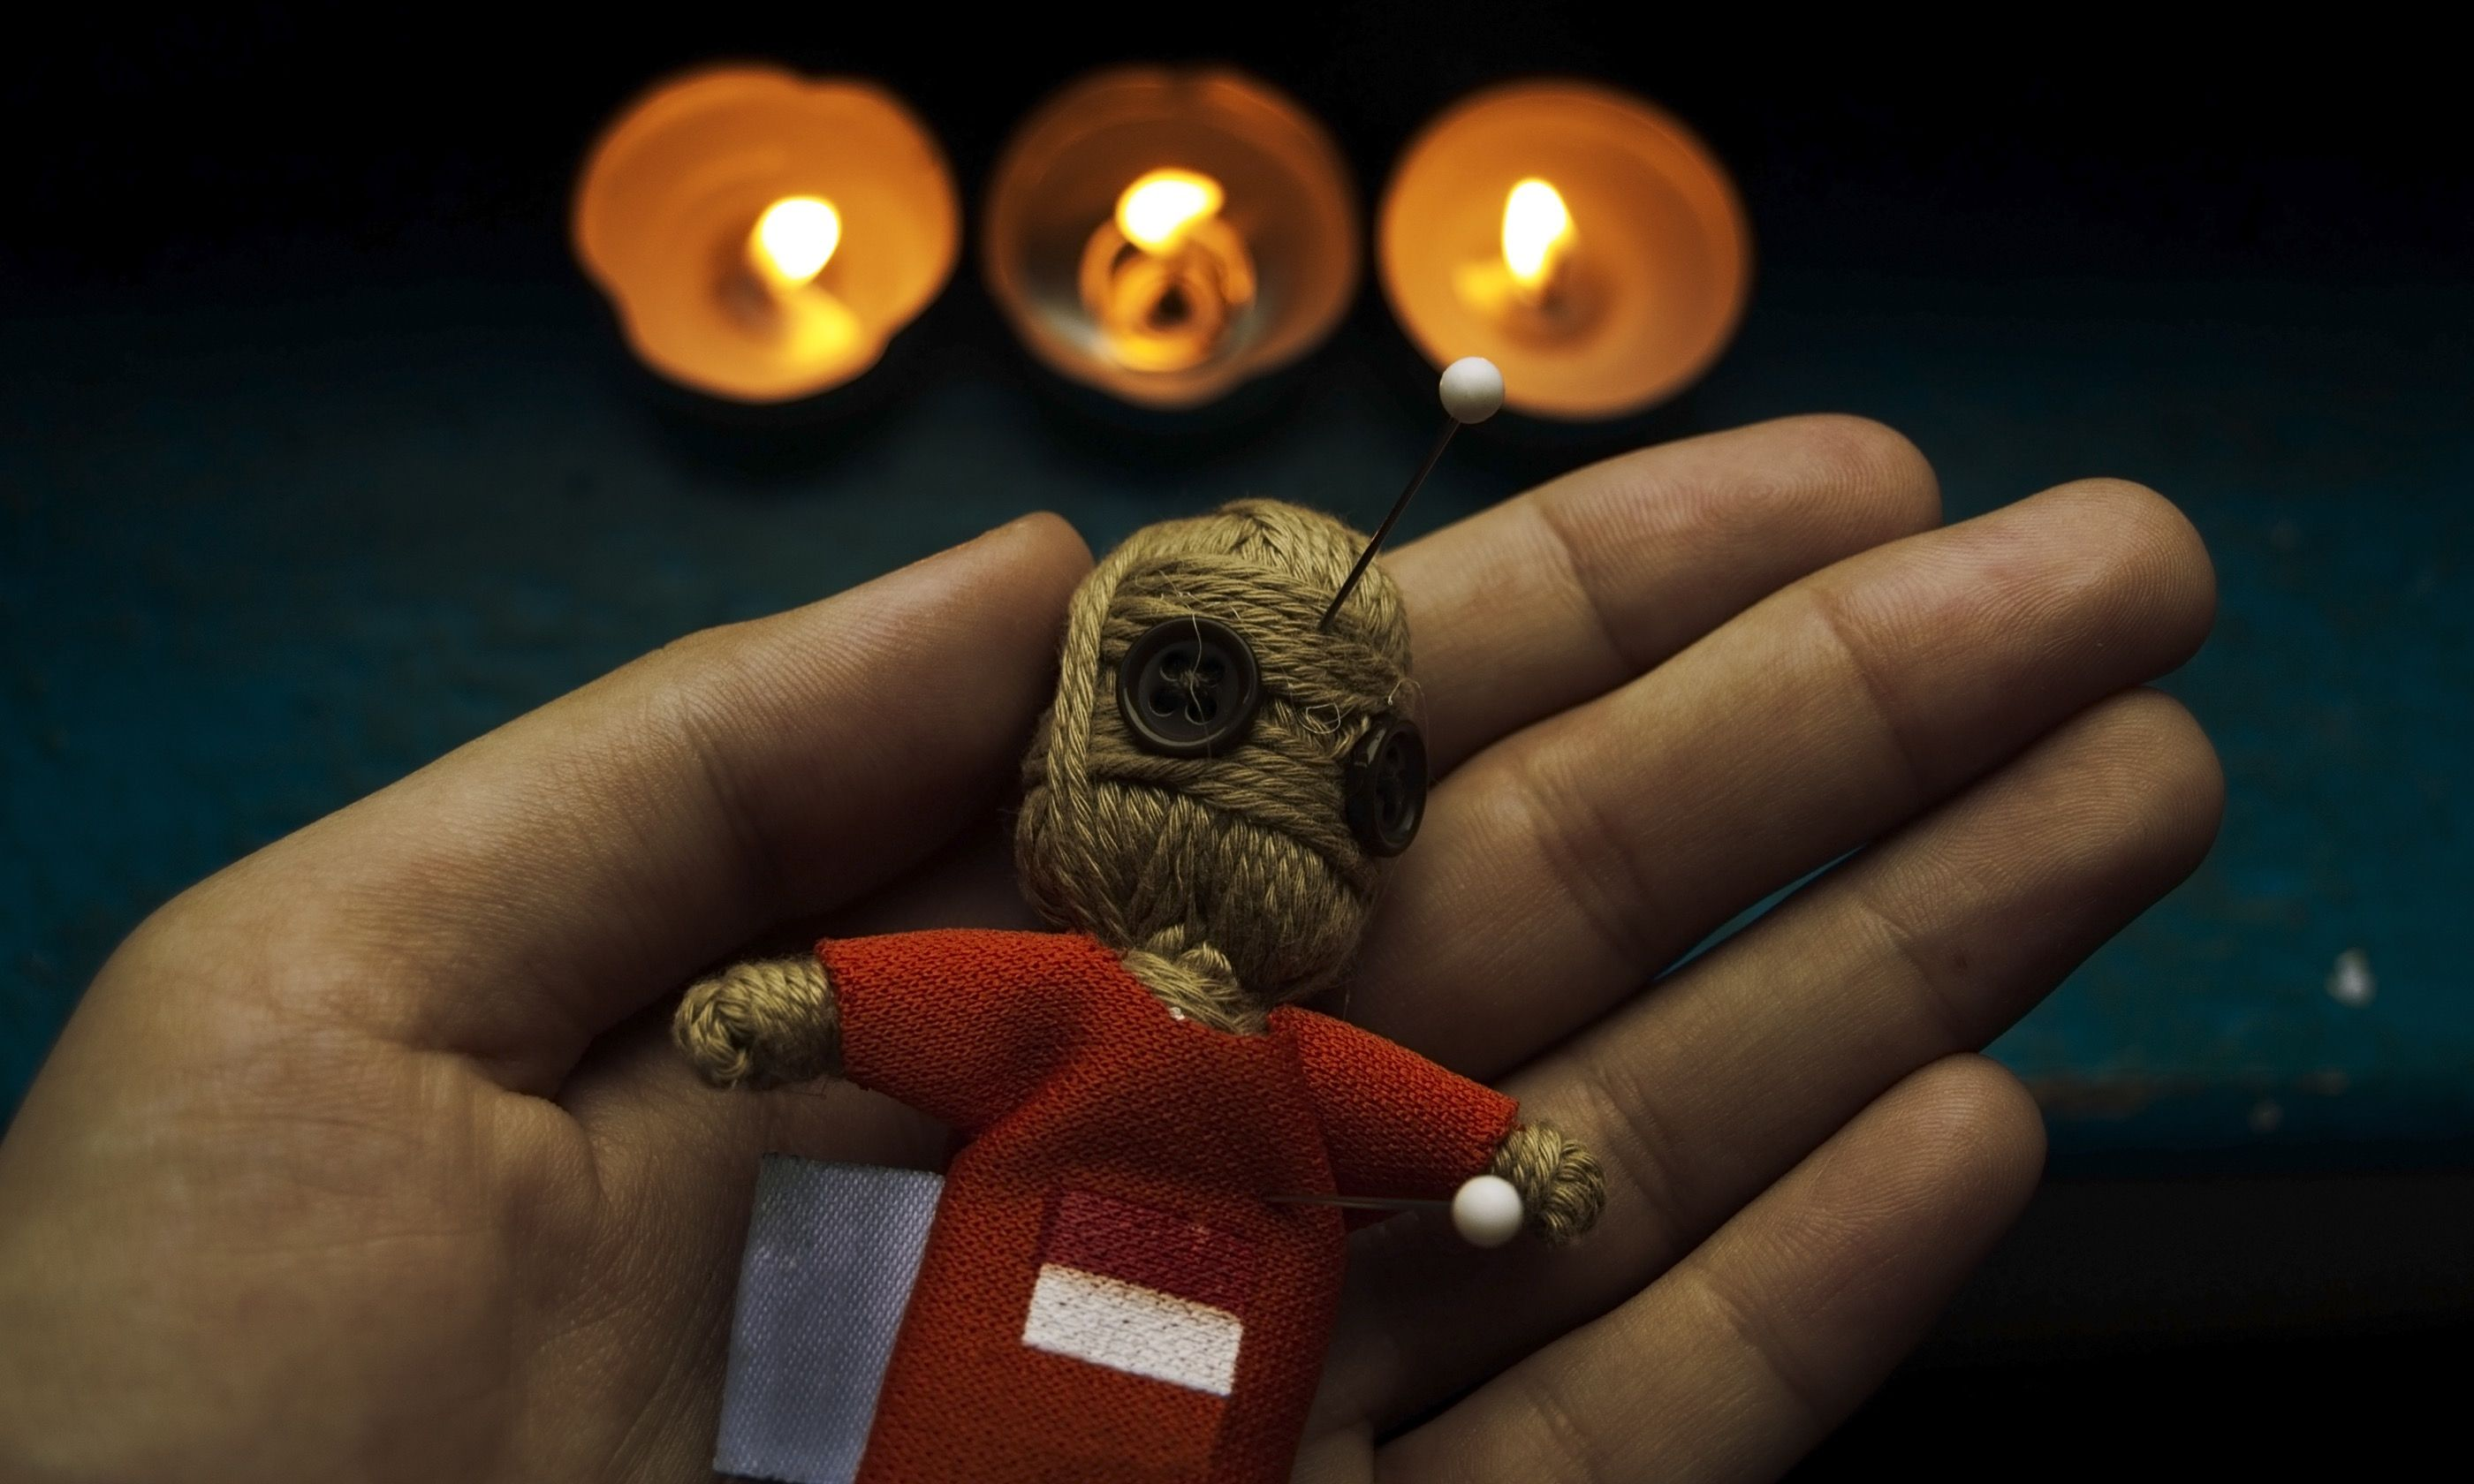 Voodoo doll with candles (Shutterstock.com)